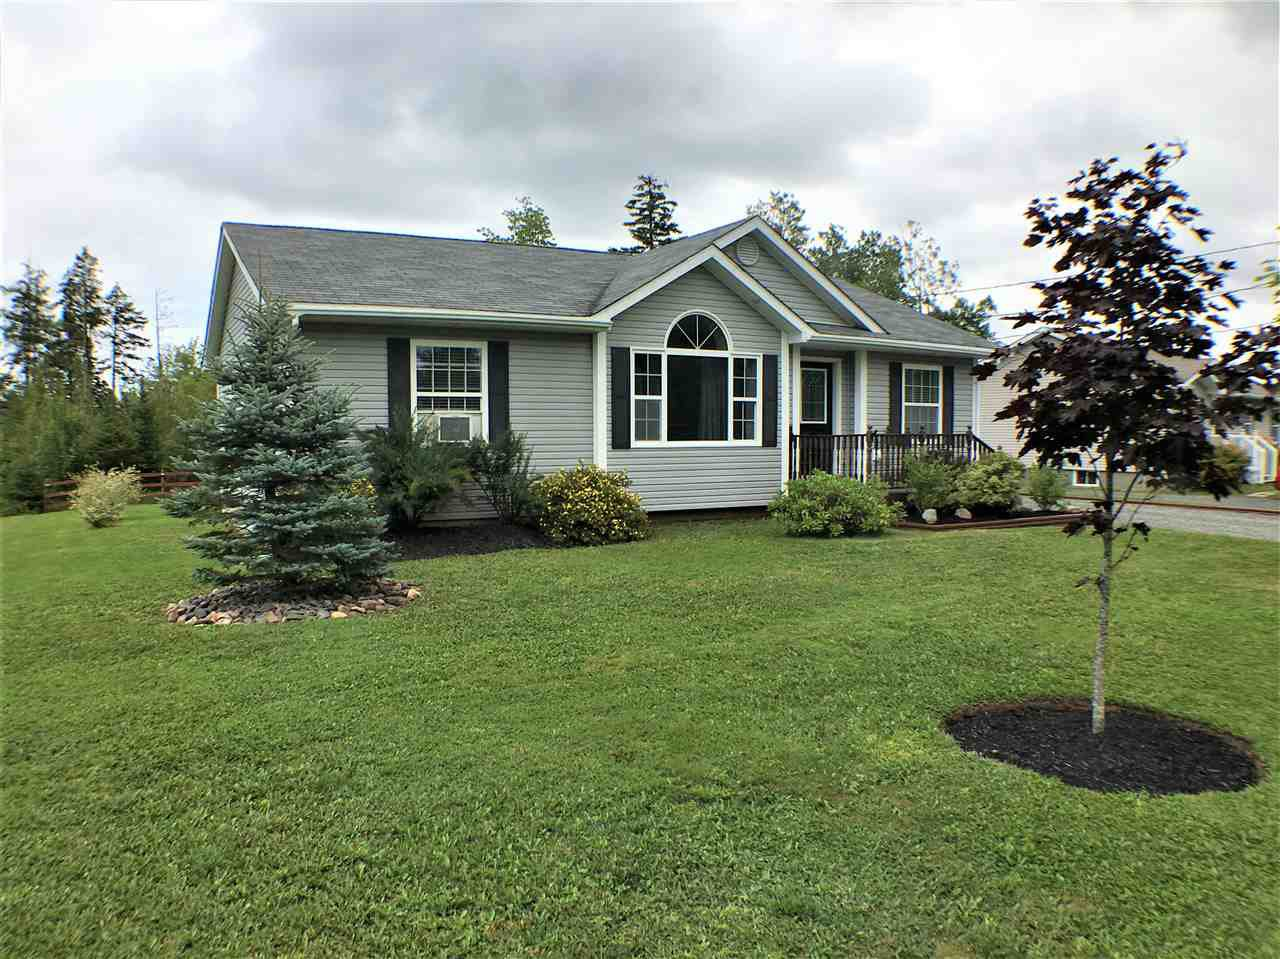 Main Photo: 2500 Spring Garden Road in Westville: 107-Trenton,Westville,Pictou Residential for sale (Northern Region)  : MLS®# 201921298